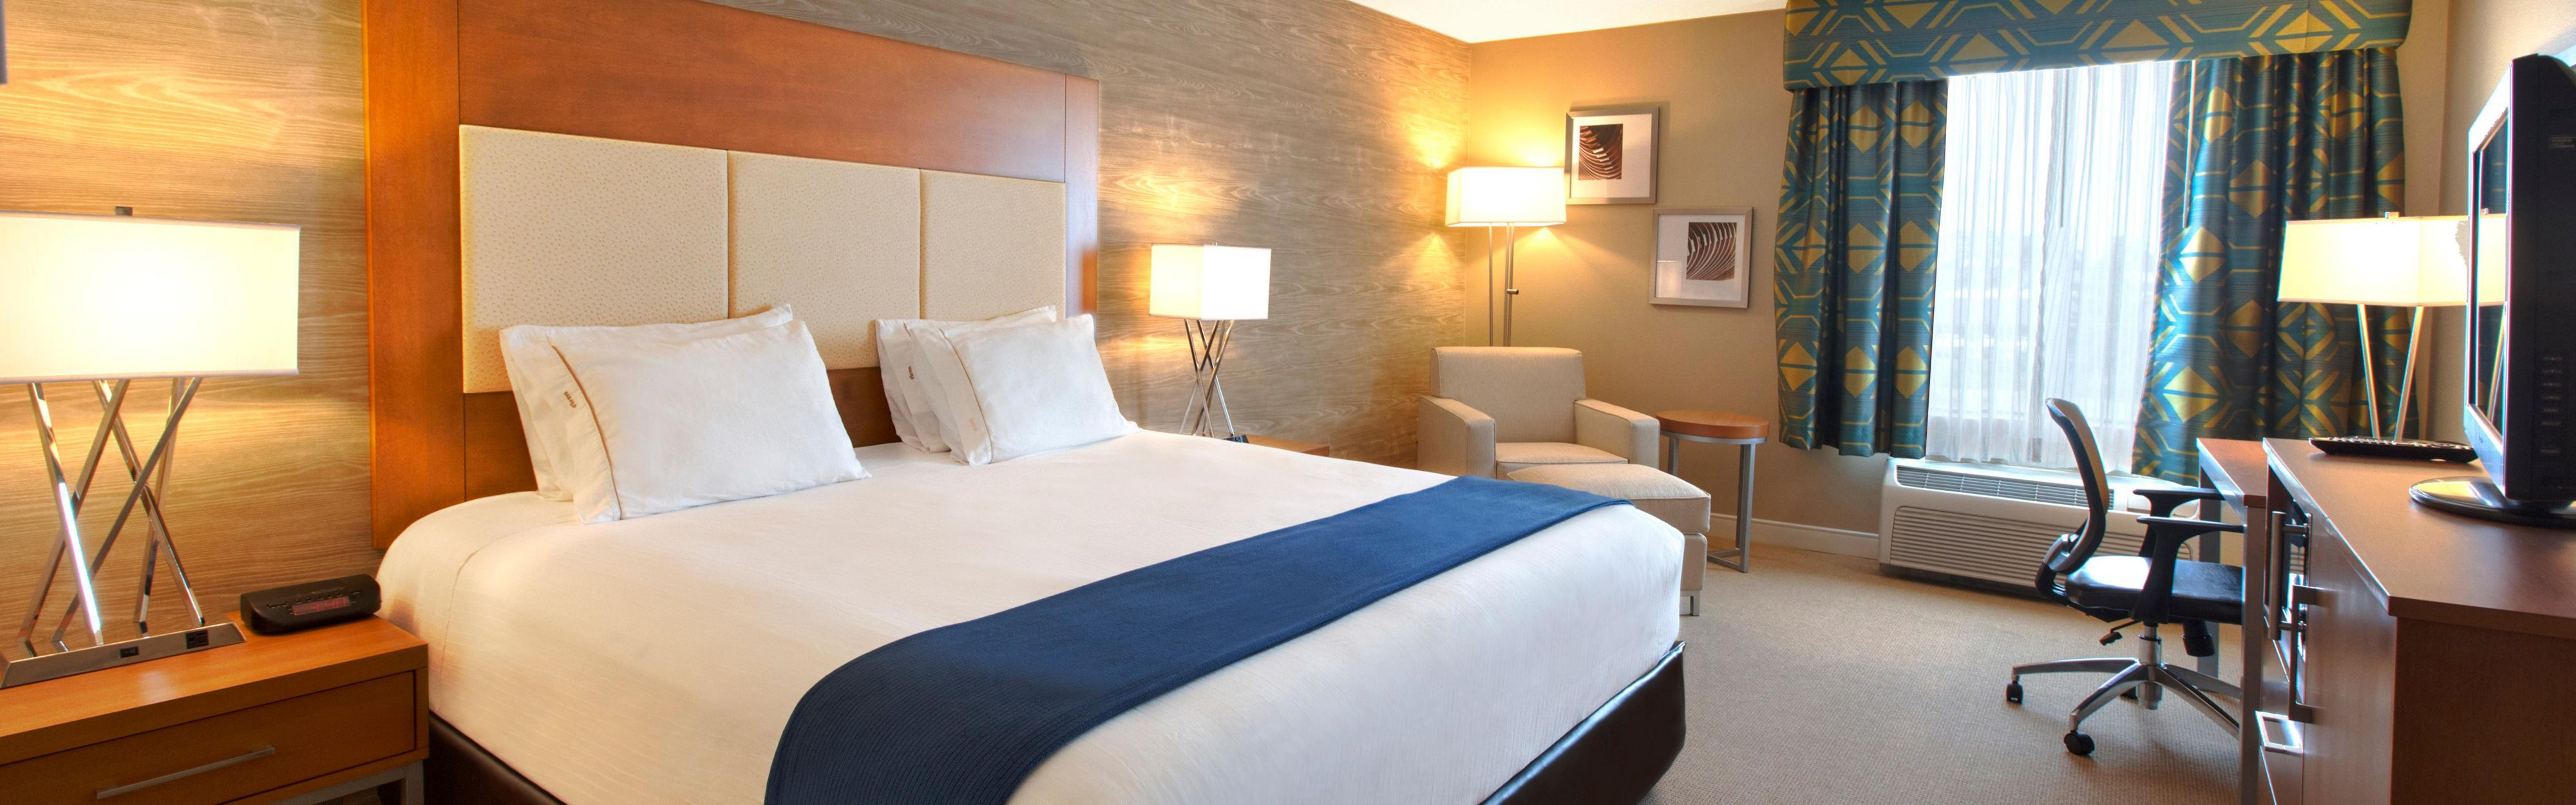 Holiday Inn Express & Suites Houston North-Spring Area image 1